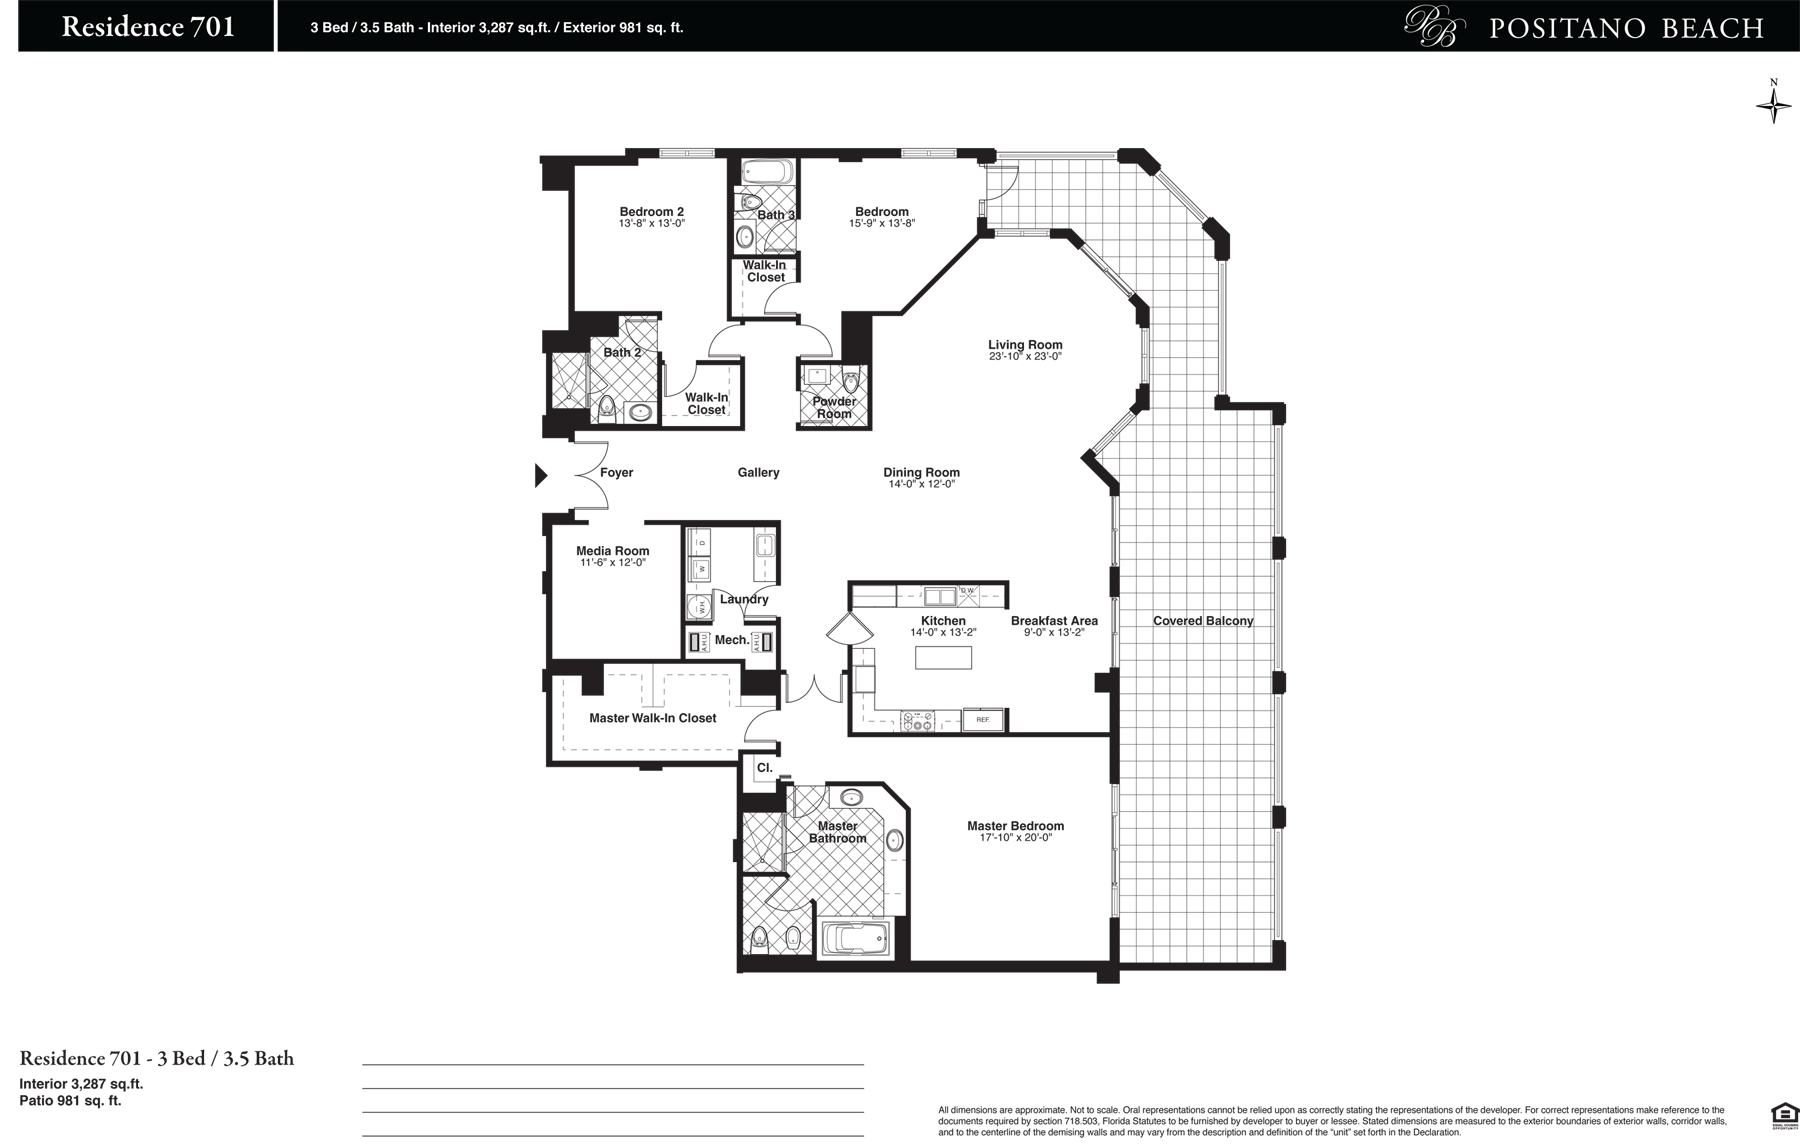 Positano Beach - Floorplan 14